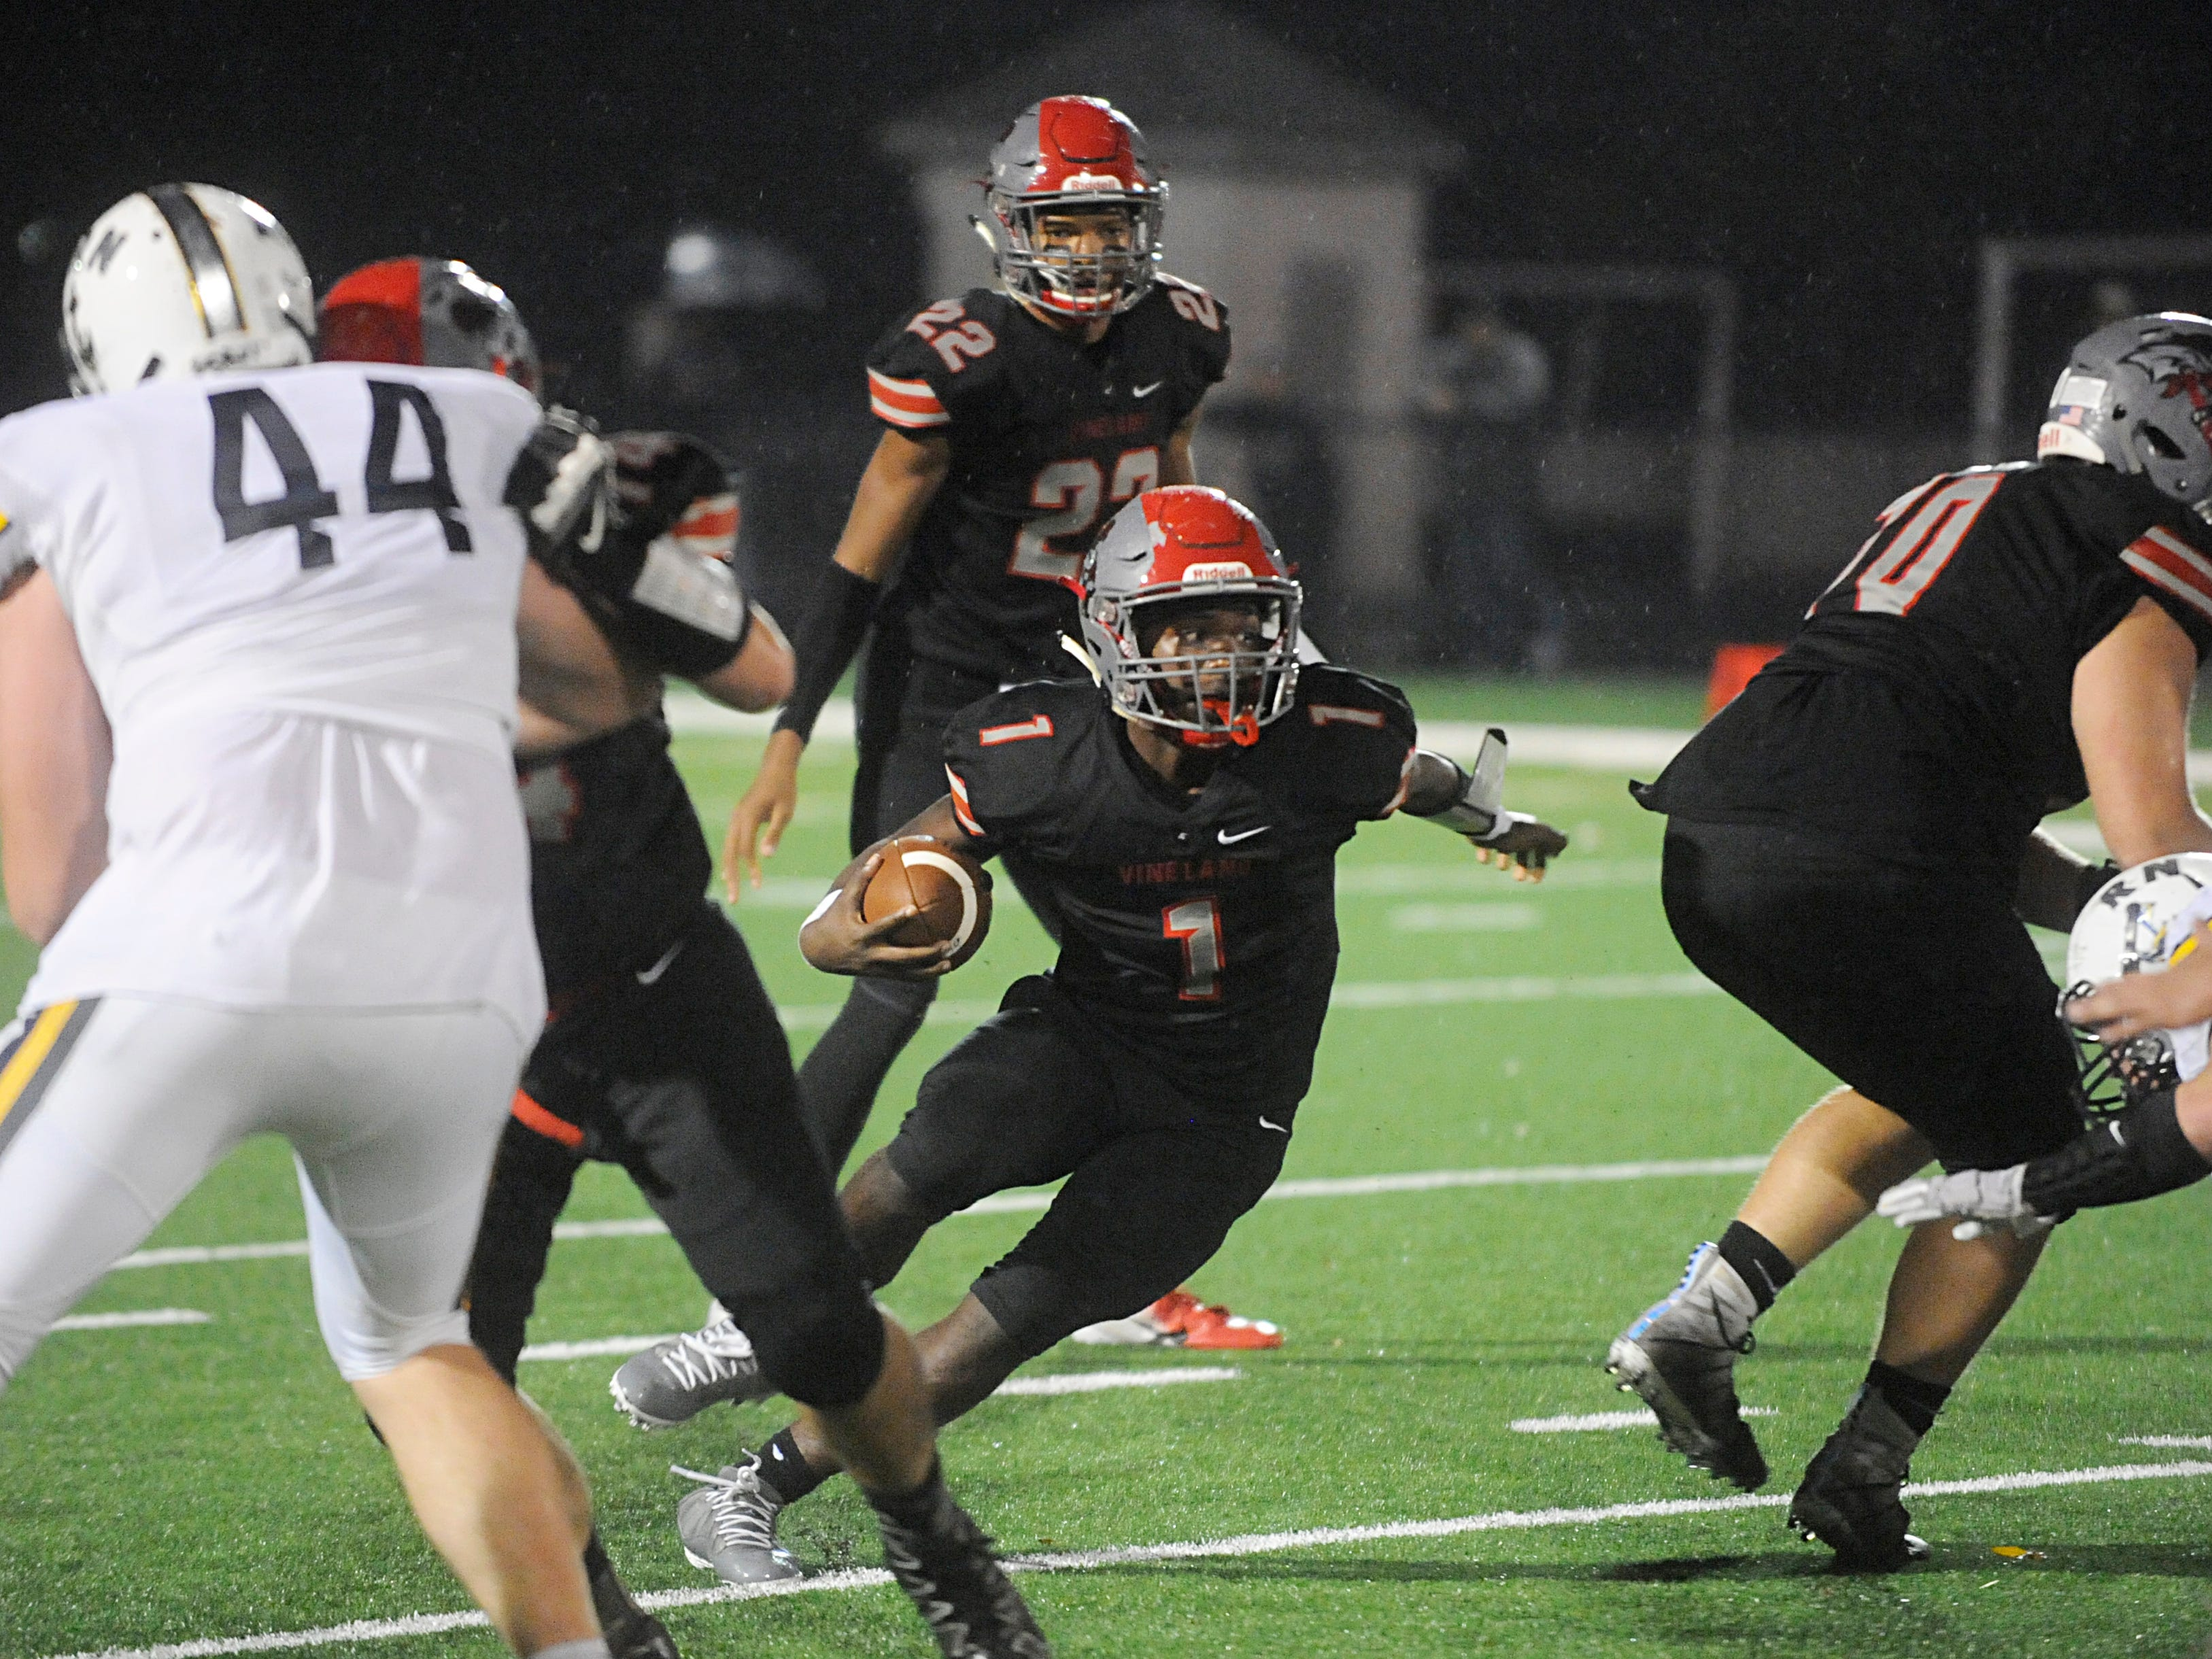 Vineland's Anthony Arthur runs for a gain against visiting Toms River North. The Fighting Clan blanked the Mariners, 33-0, on Friday, November 2, 2018.